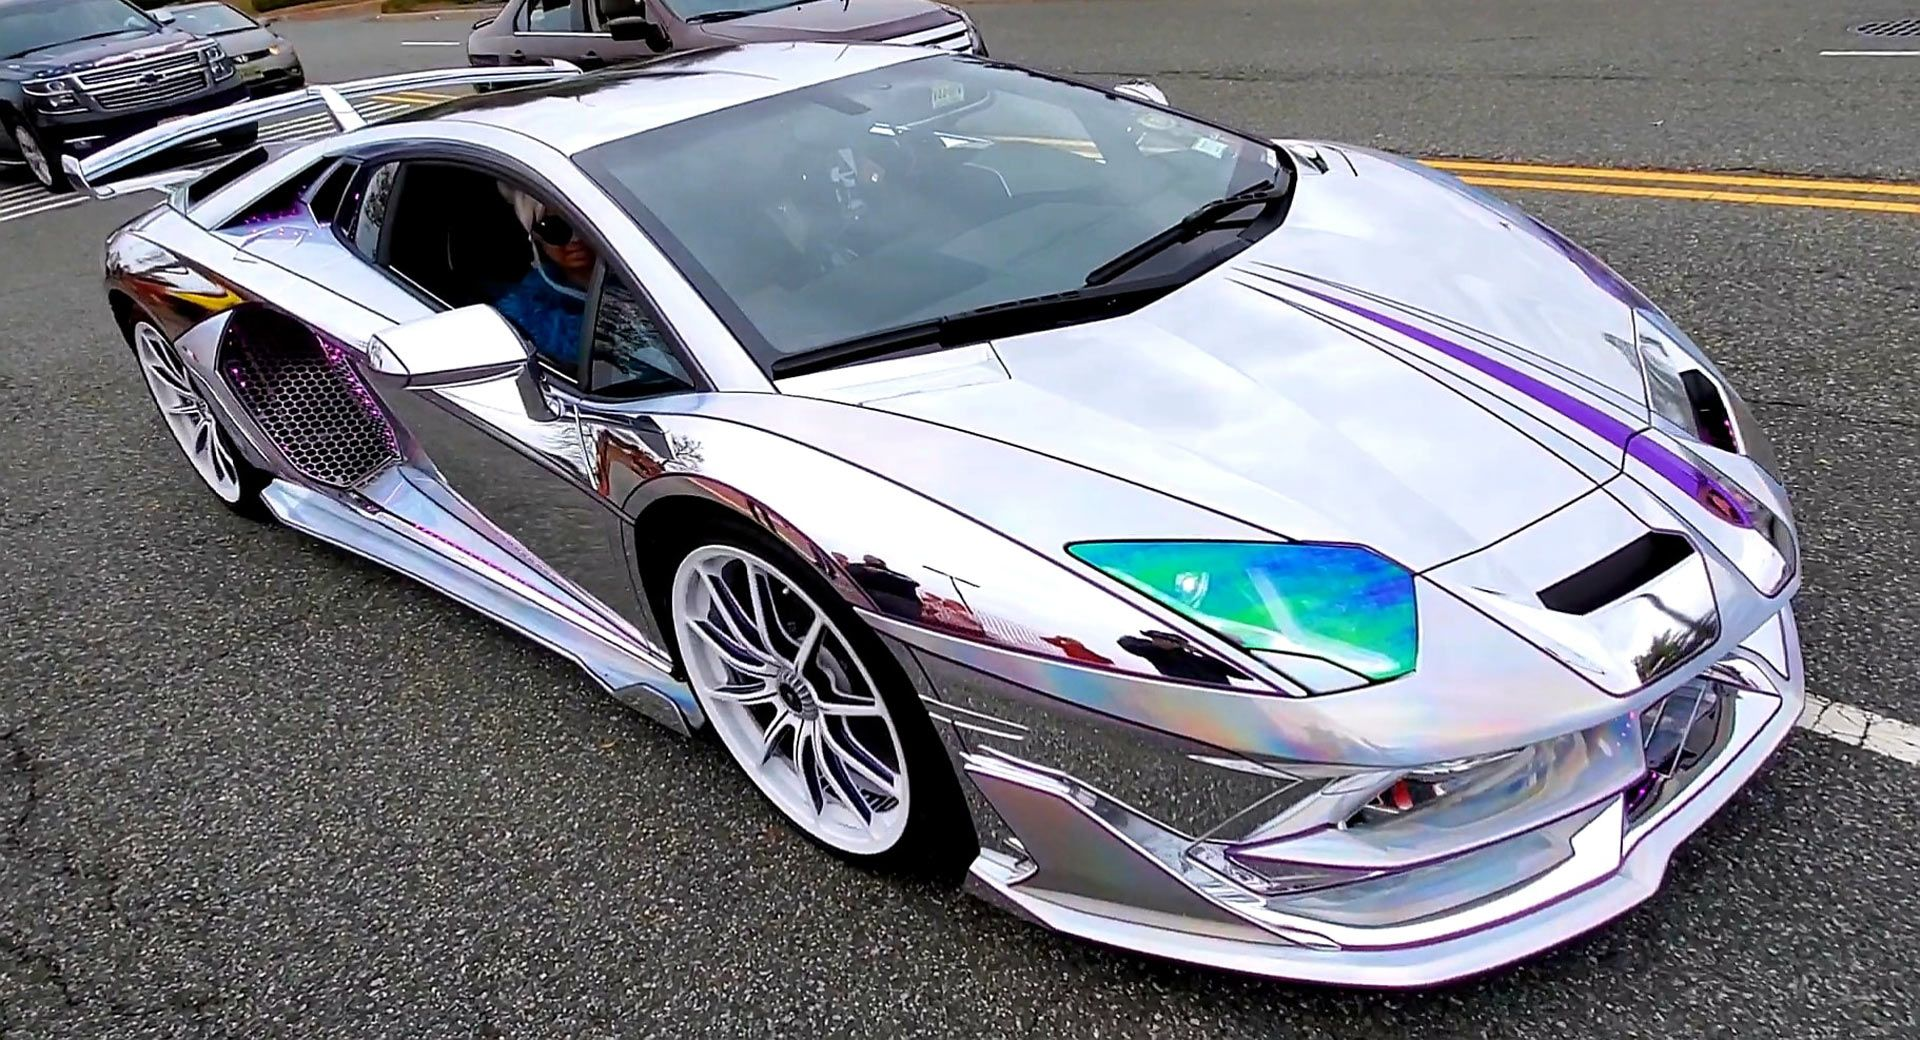 Holographic Chrome Lamborghini Aventador Svj Is As Bright As Times Square Carscoops In 2020 Lamborghini Aventador Super Luxury Cars Lamborghini